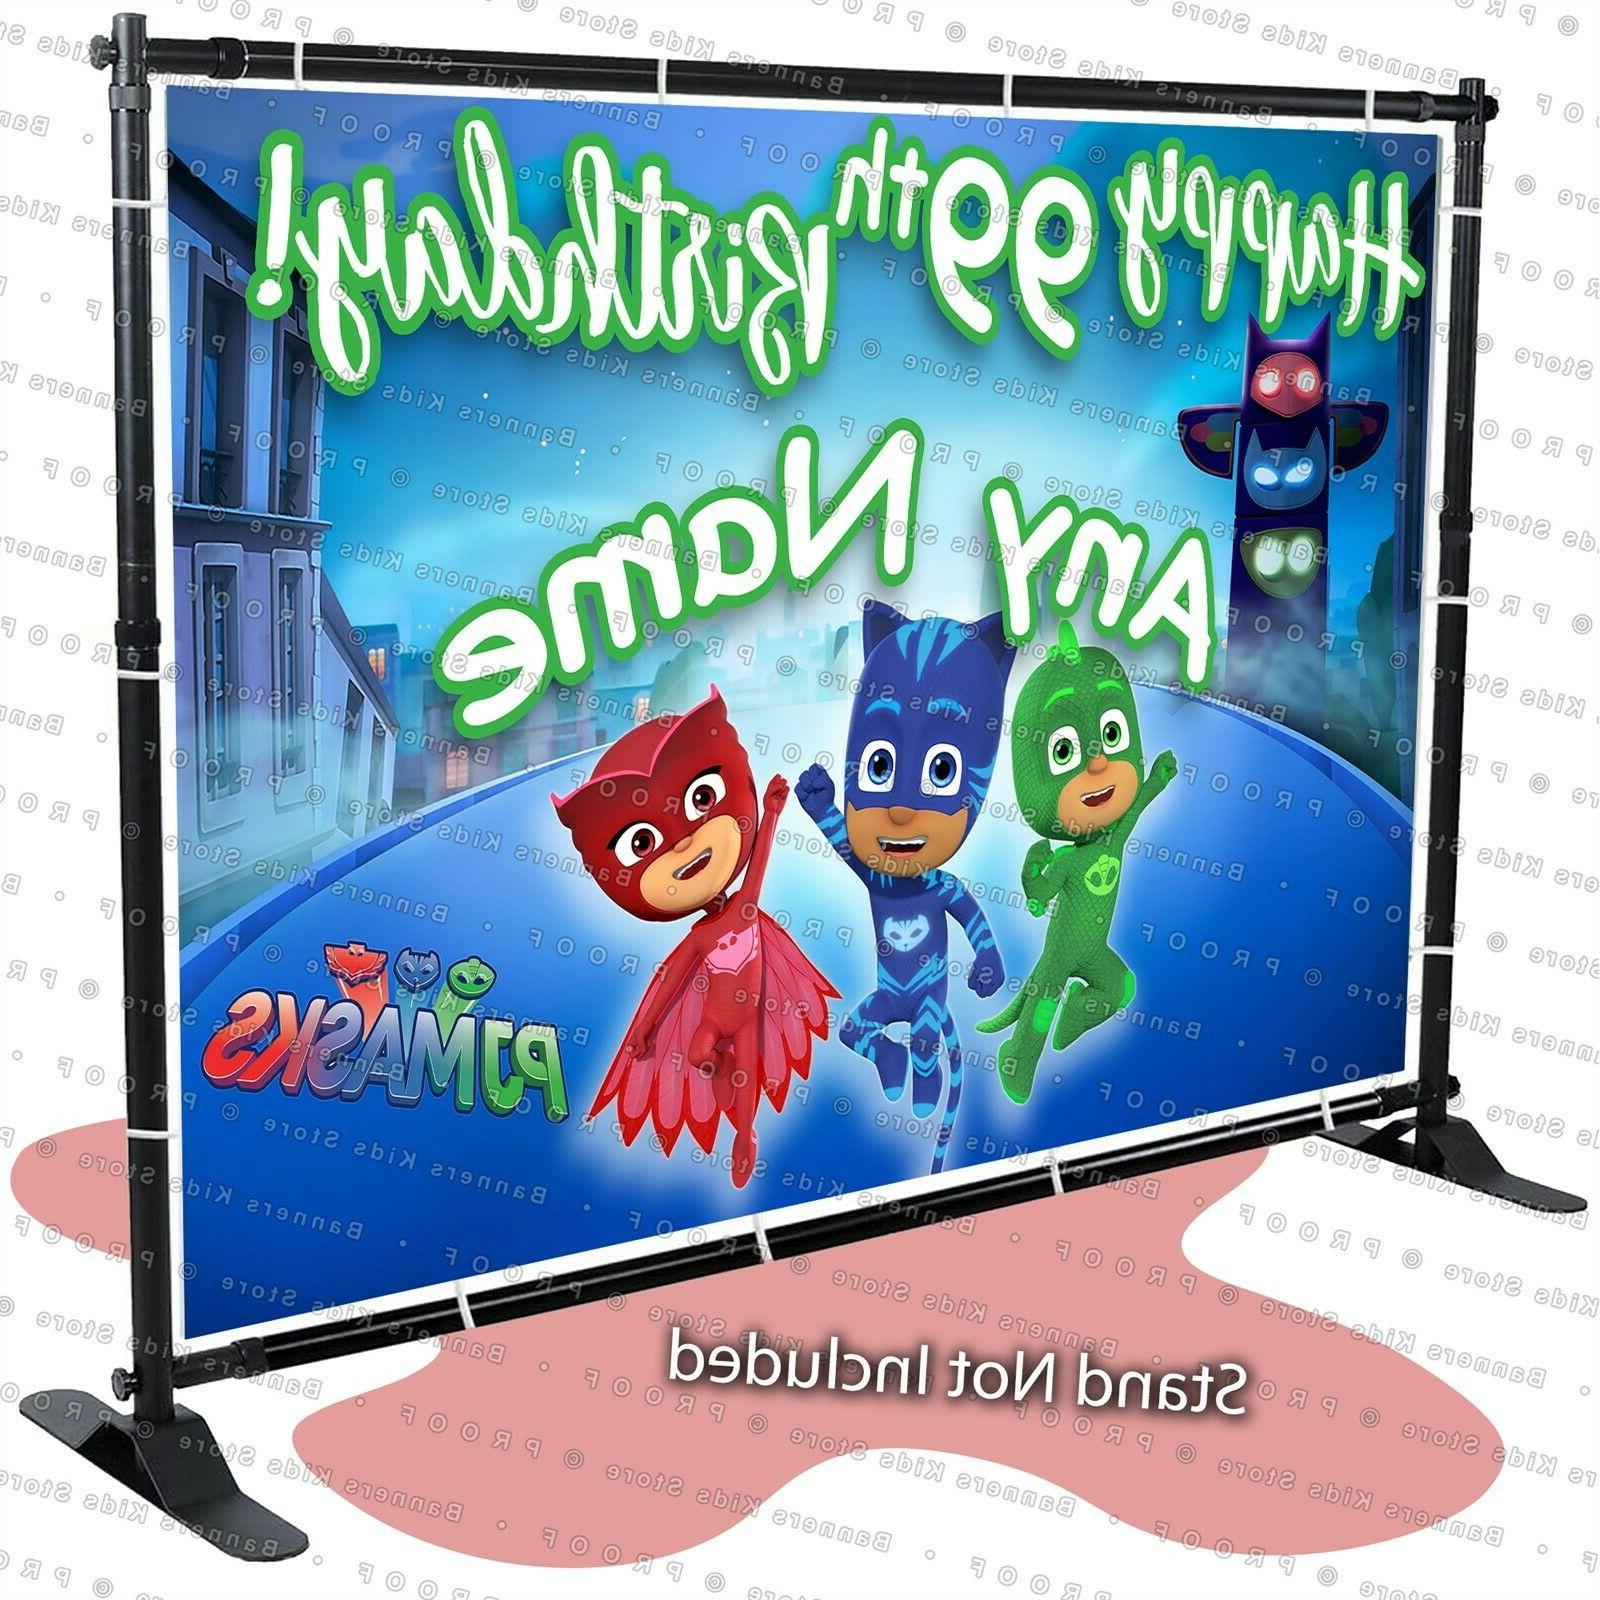 pj mask birthday banner party backdrop decoration